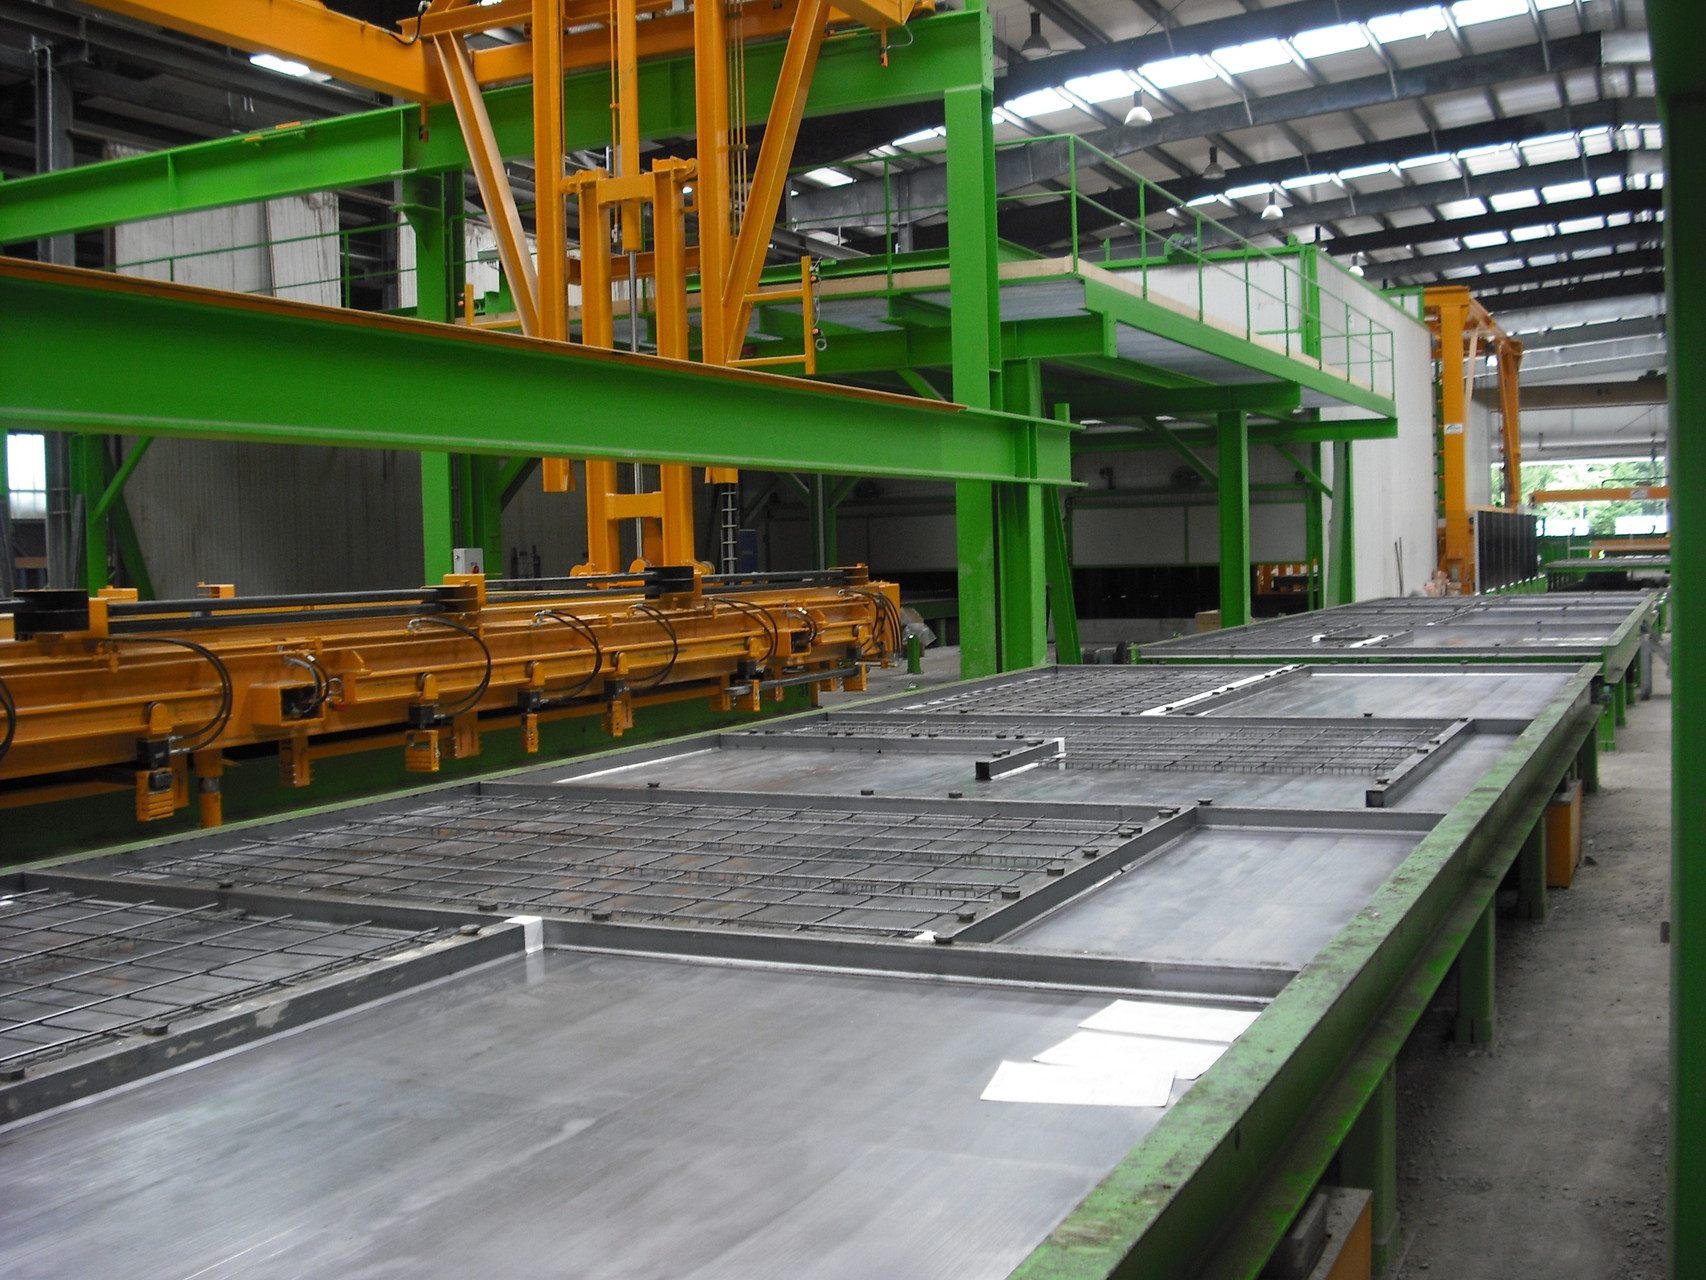 STEEL PRODUCTION PALLETS IN A CIRCULATION LINE